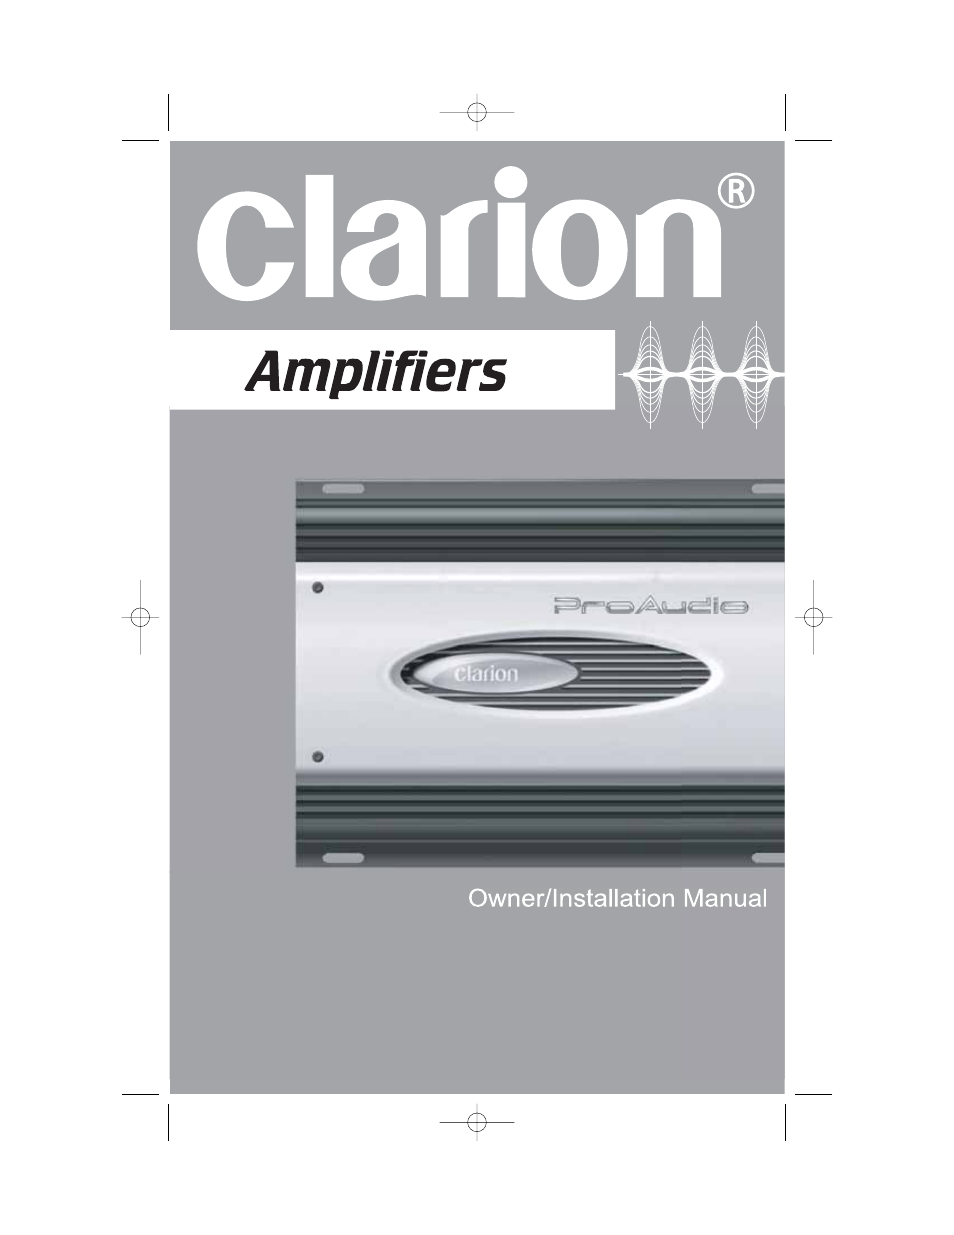 Clarion Manuals Nx700e Wiring Diagram Similar User Array Apx640 4 Manual 19 Pages Also For Apx320 2 Rh Manualsdir Com